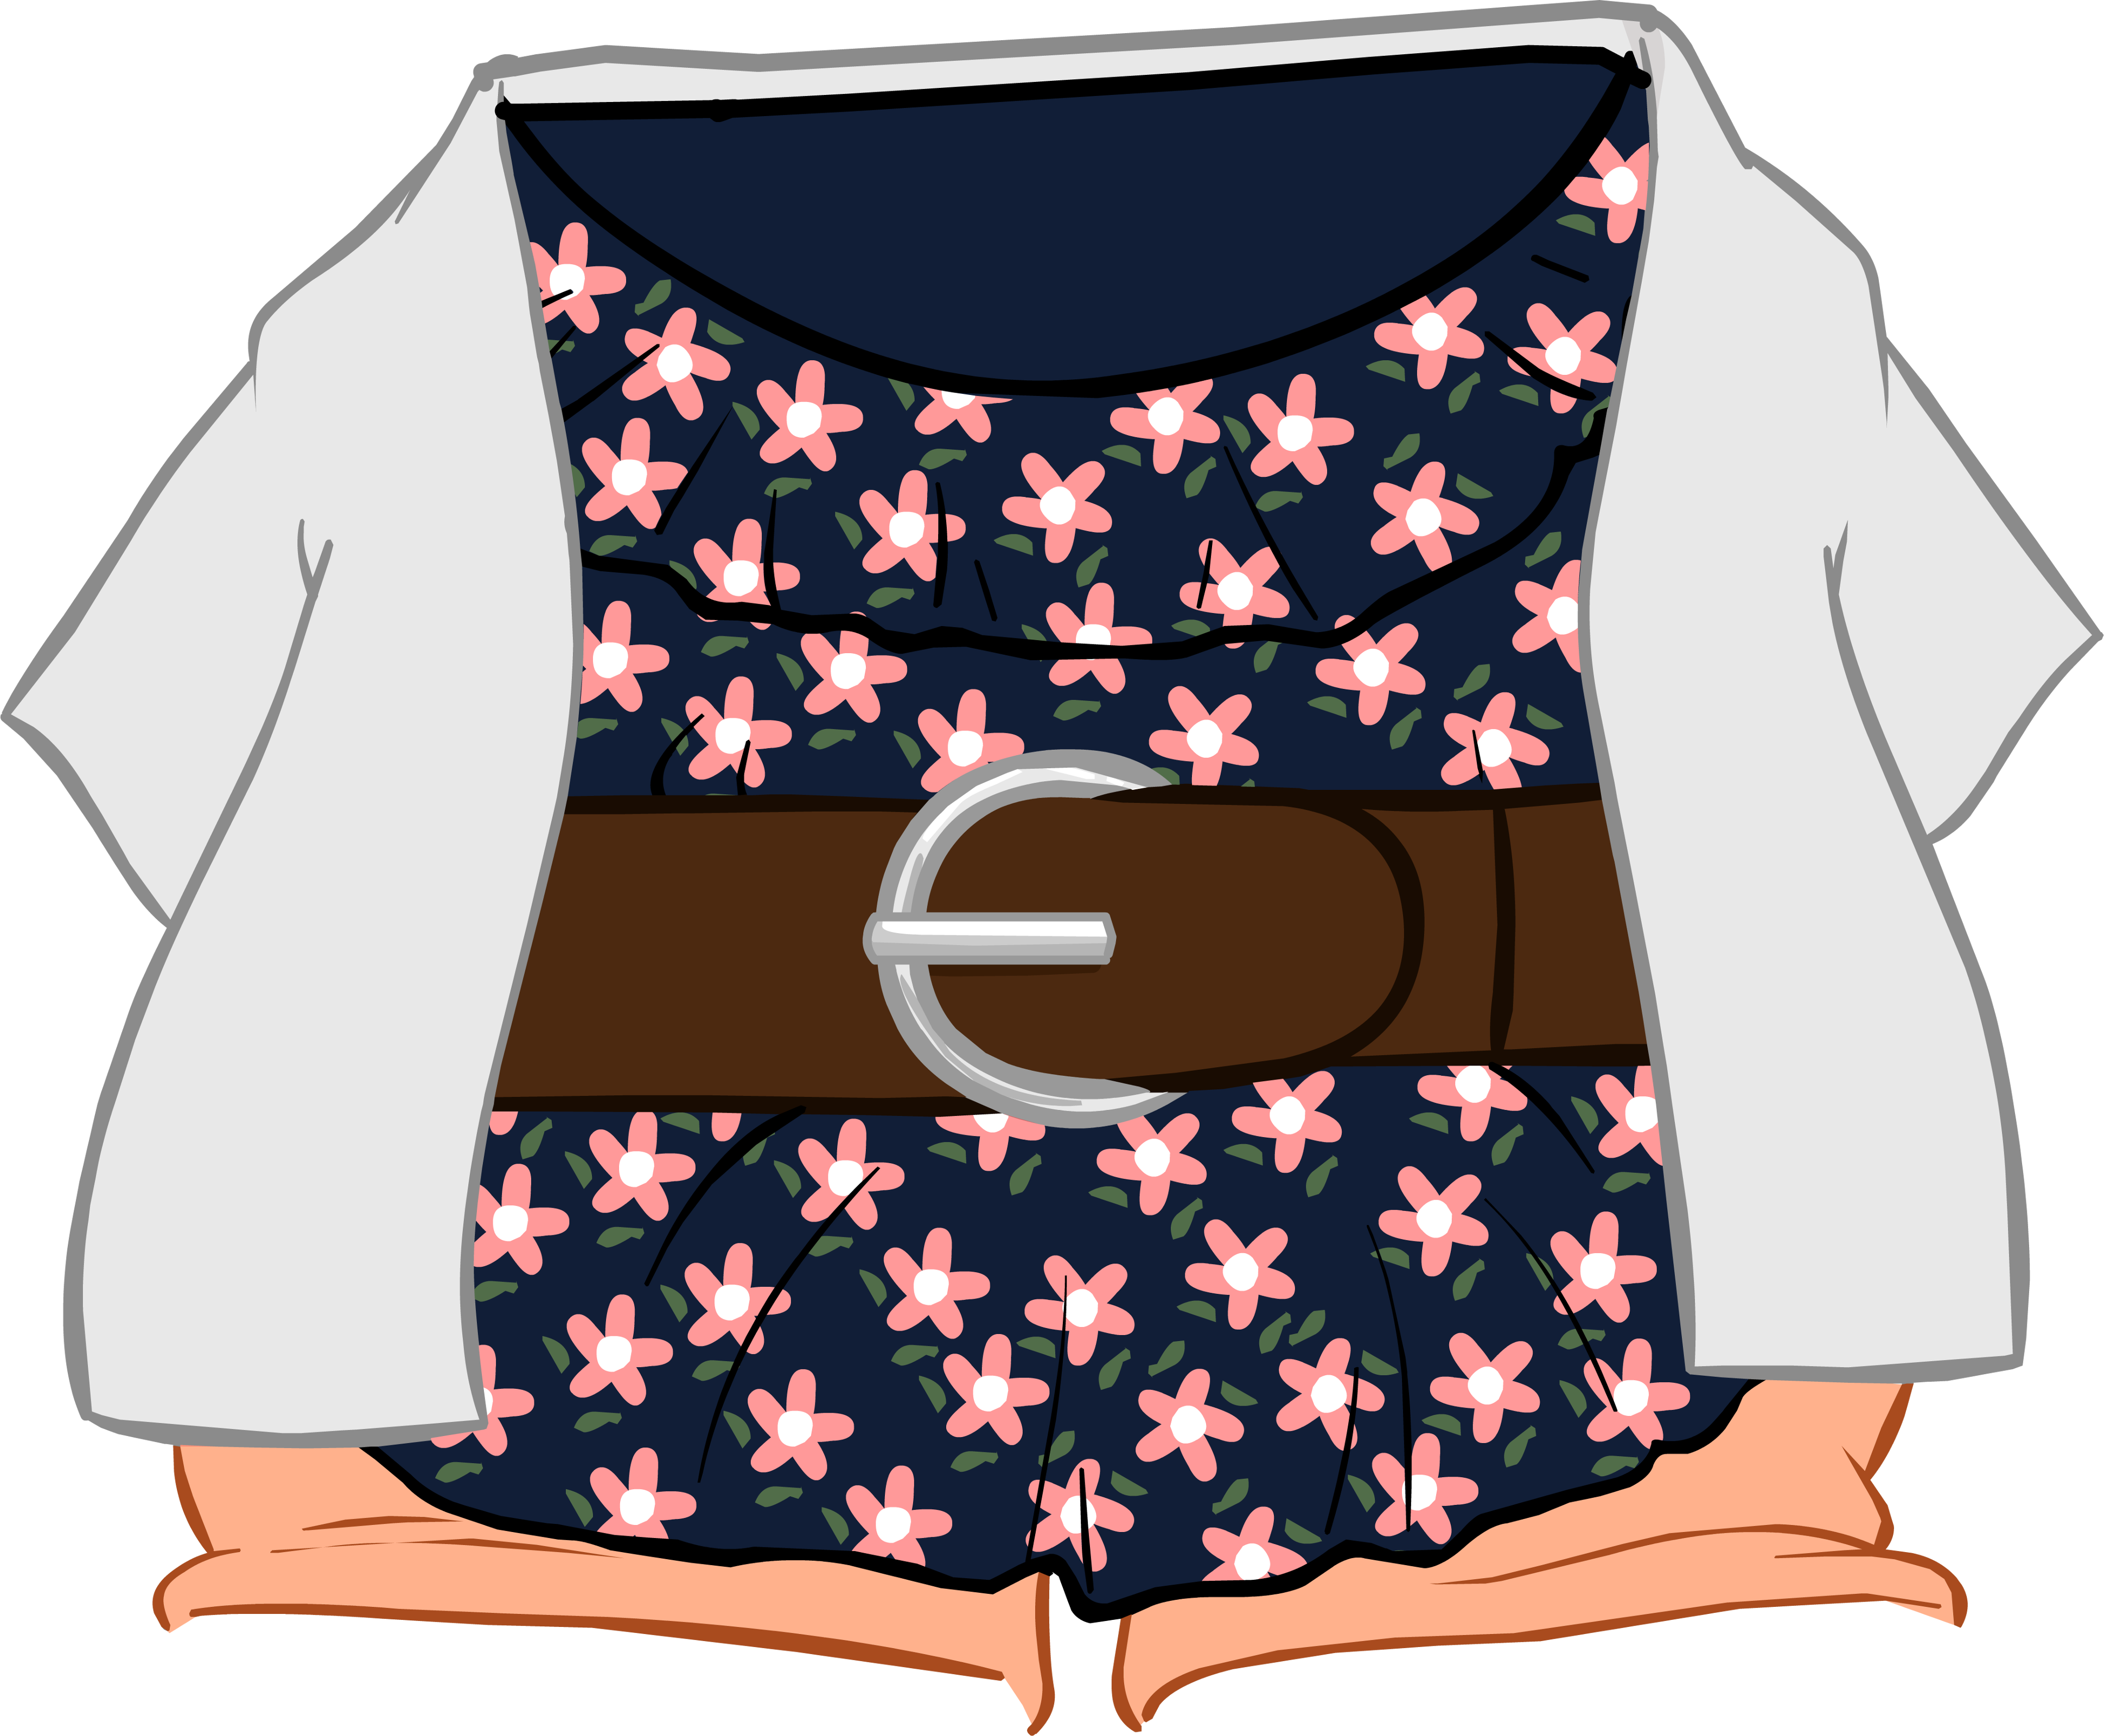 Daisy Daydream Outfit